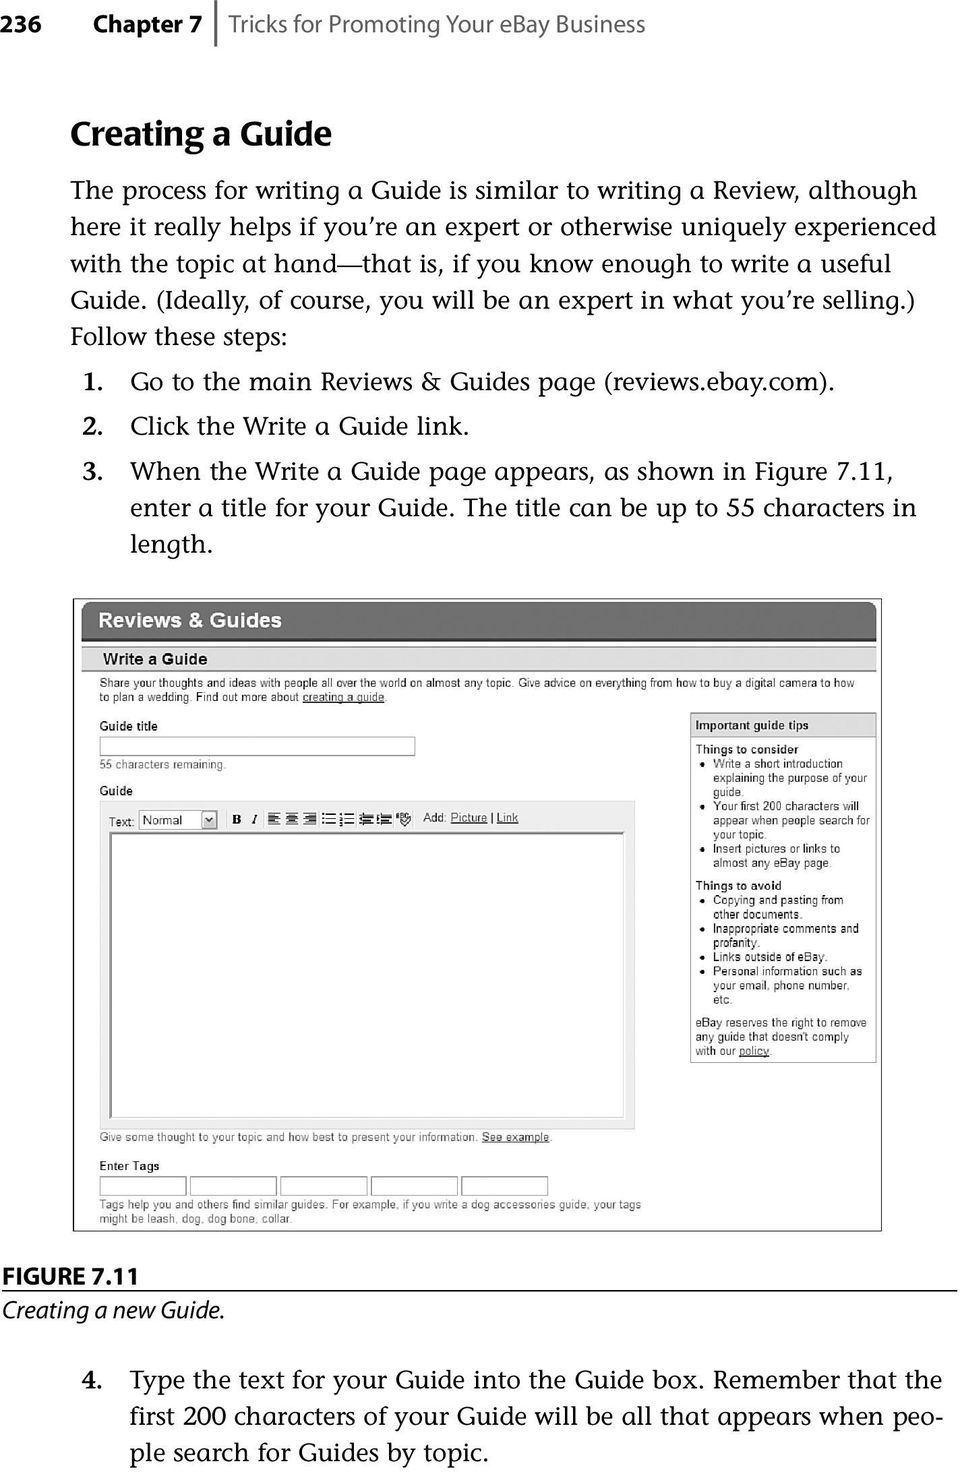 Go to the main Reviews & Guides page (reviews.ebay.com). 2. Click the Write a Guide link. 3. When the Write a Guide page appears, as shown in Figure 7.11, enter a title for your Guide.